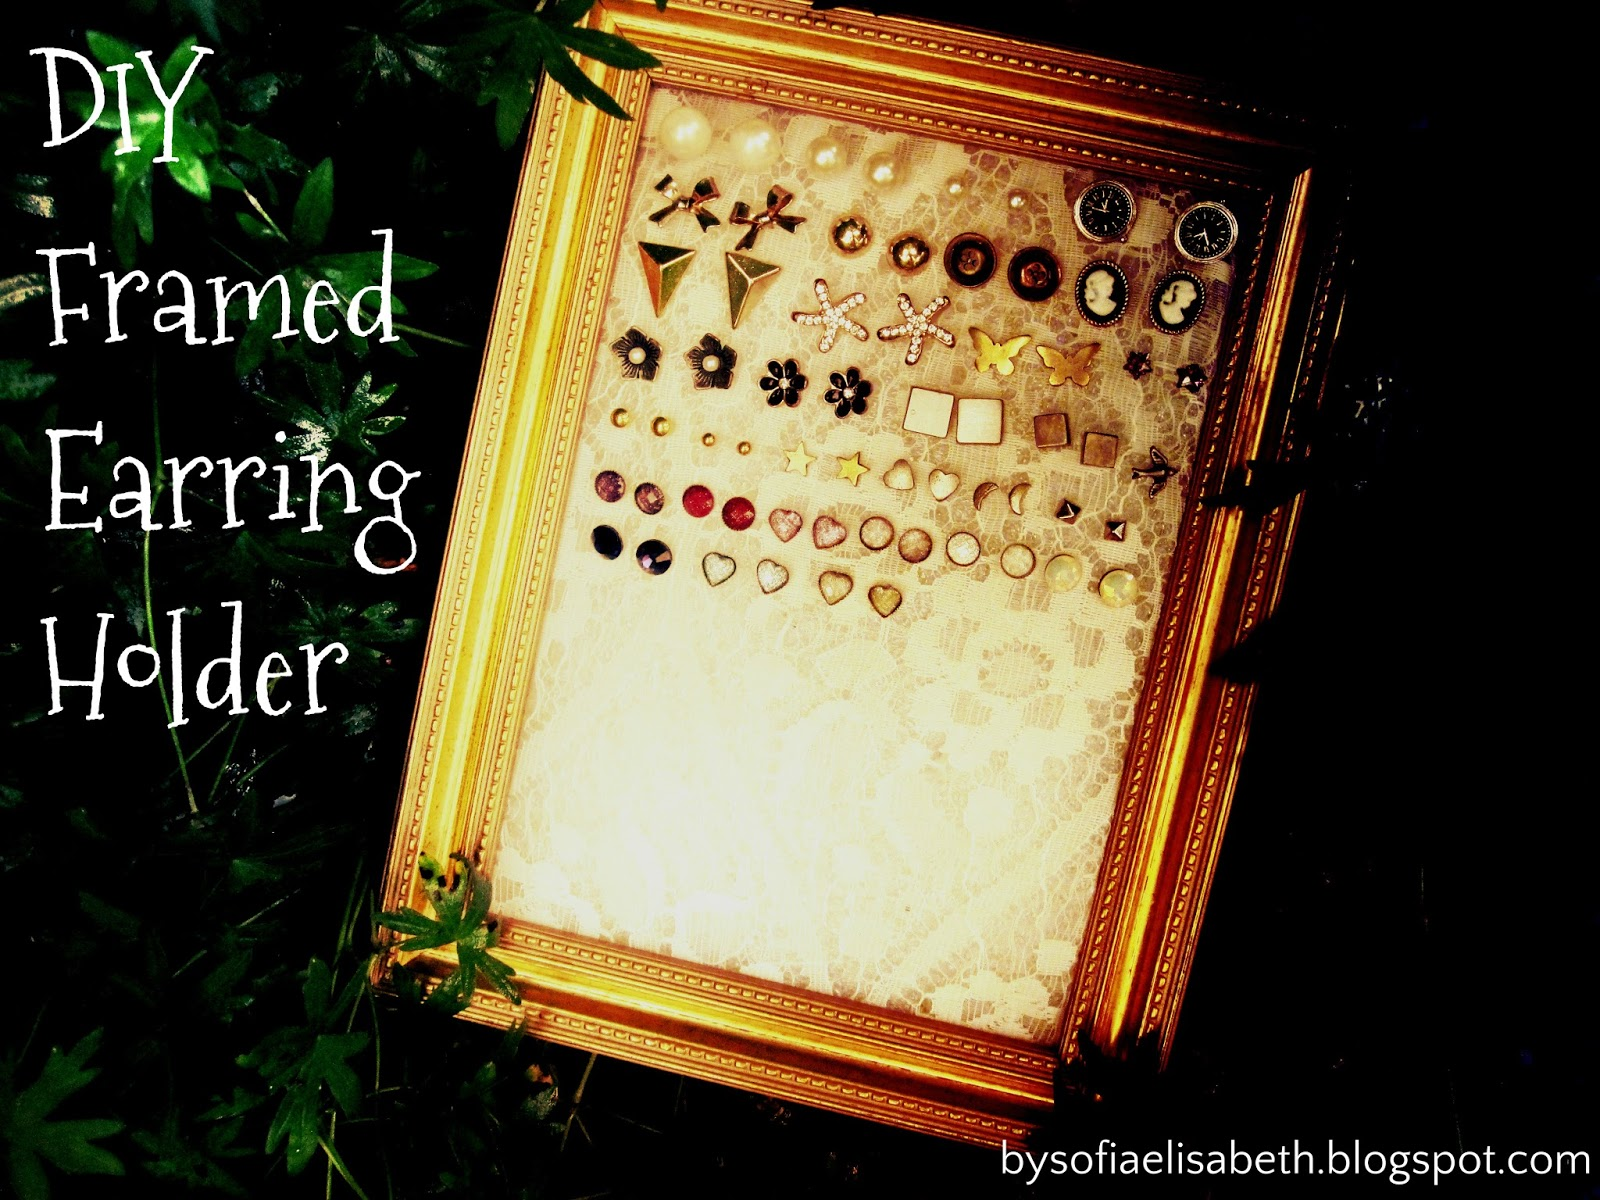 by sofia elisabeth: DIY Framed Earring Holder